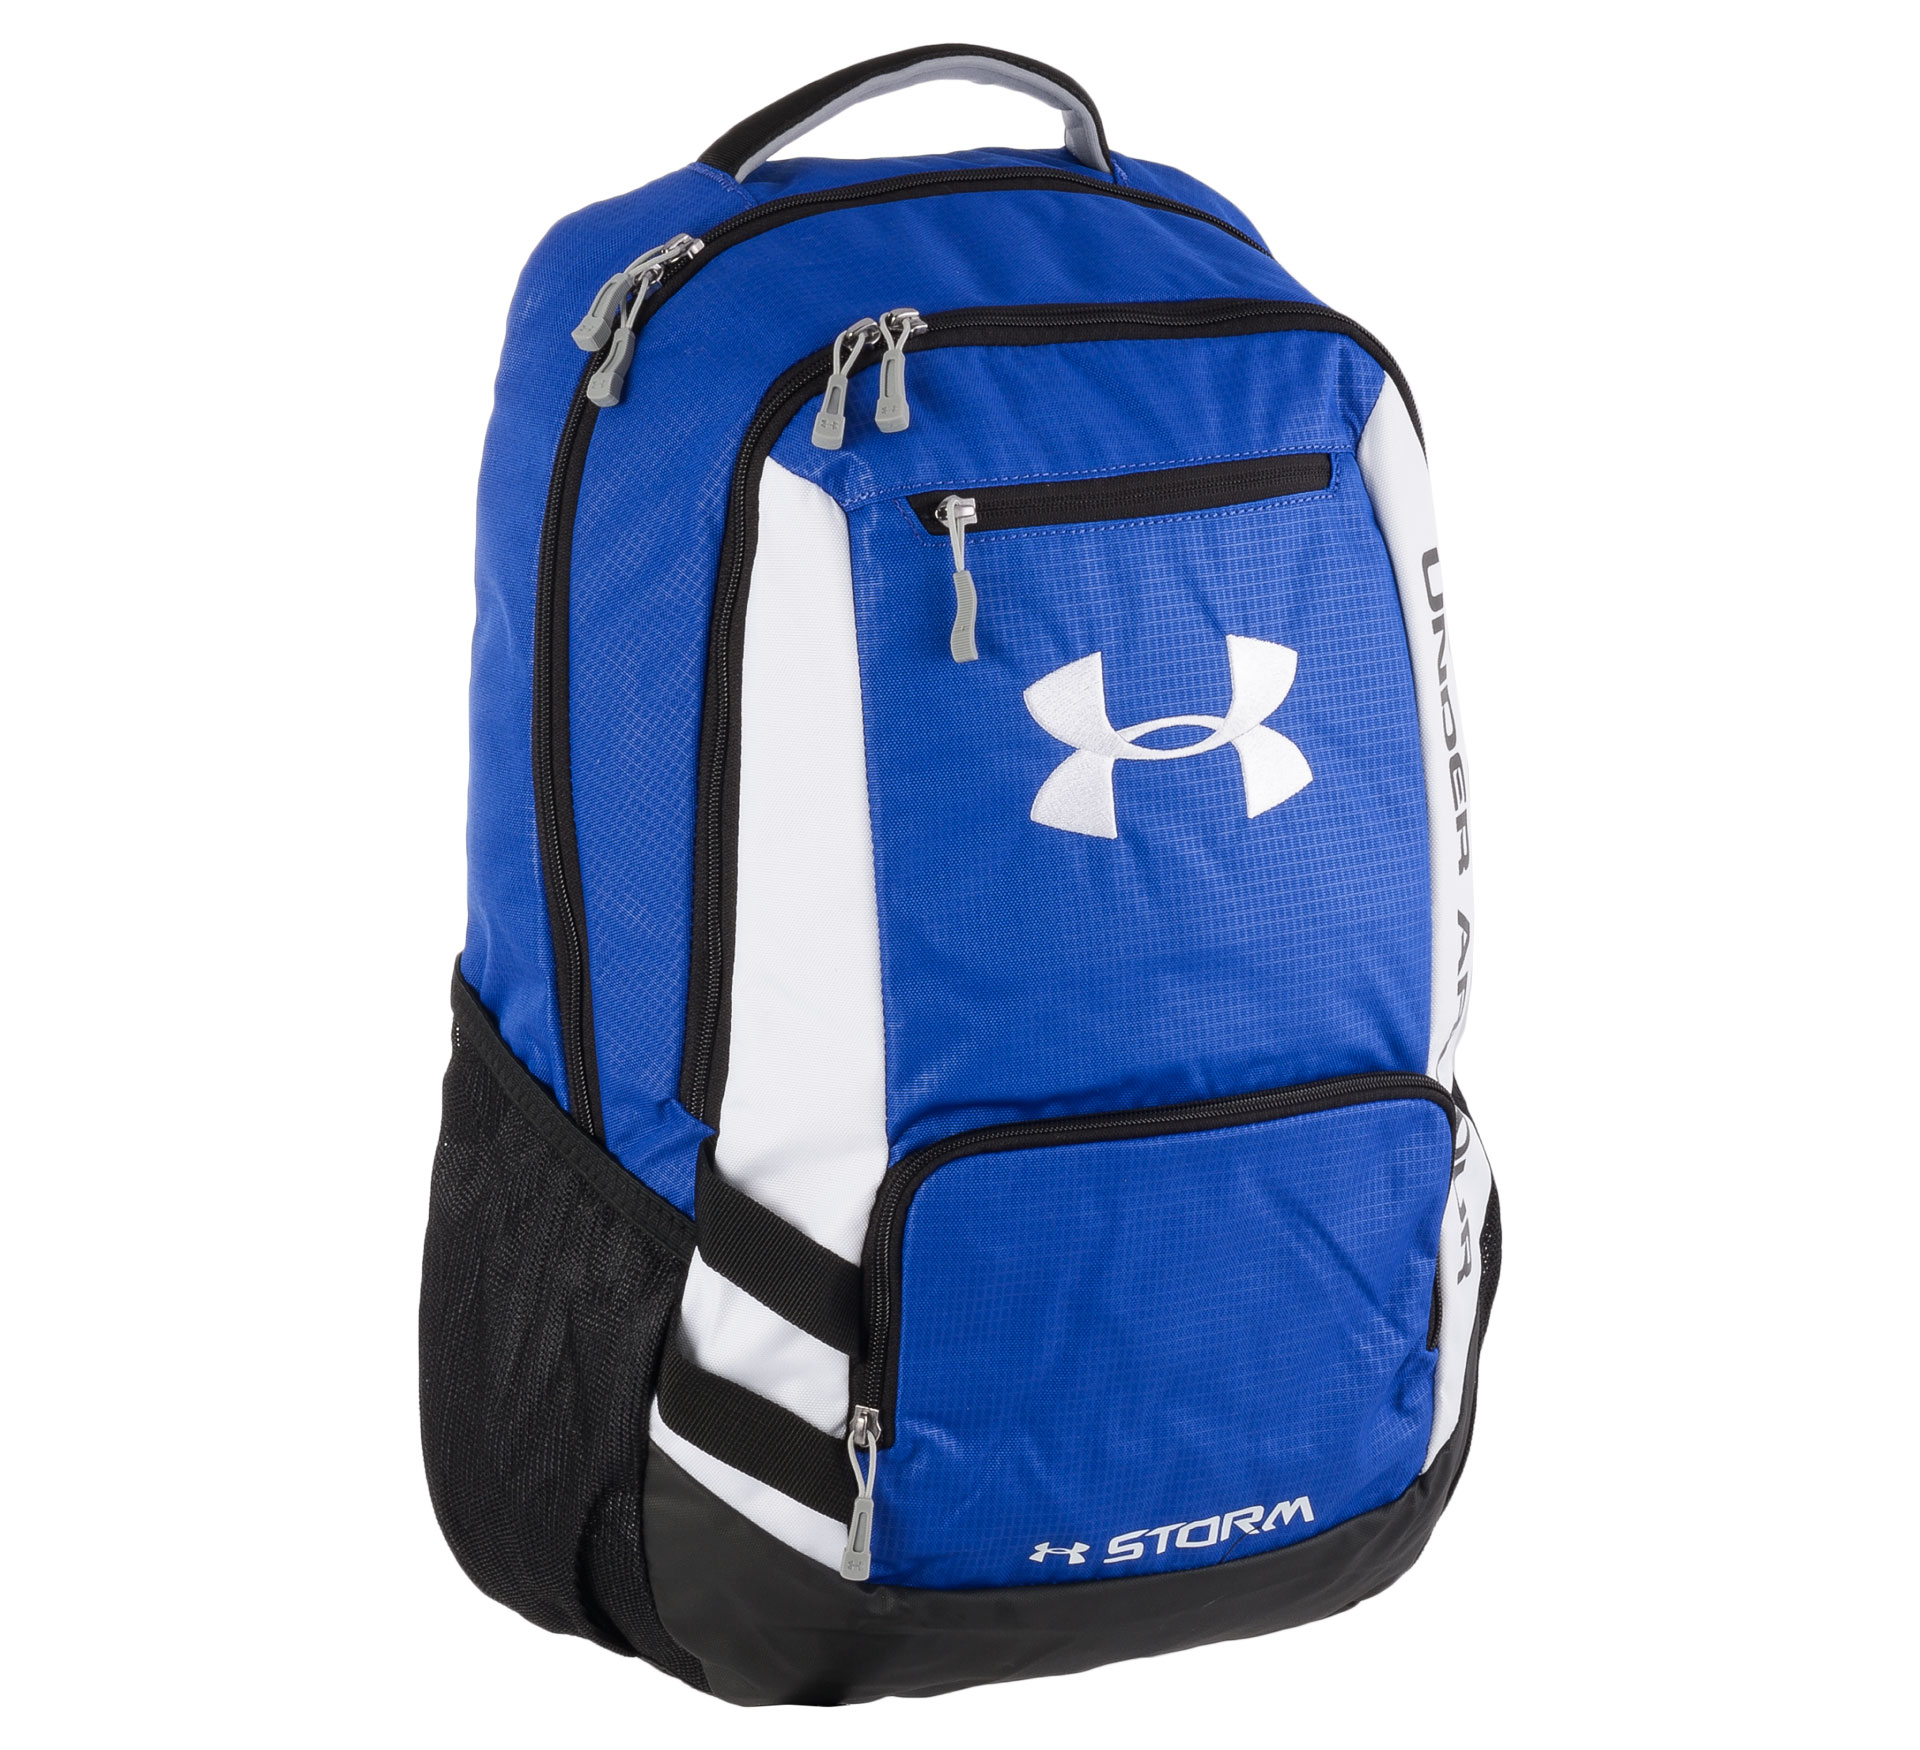 Under Armour Hustle Rugtas blauw - zwart - wit